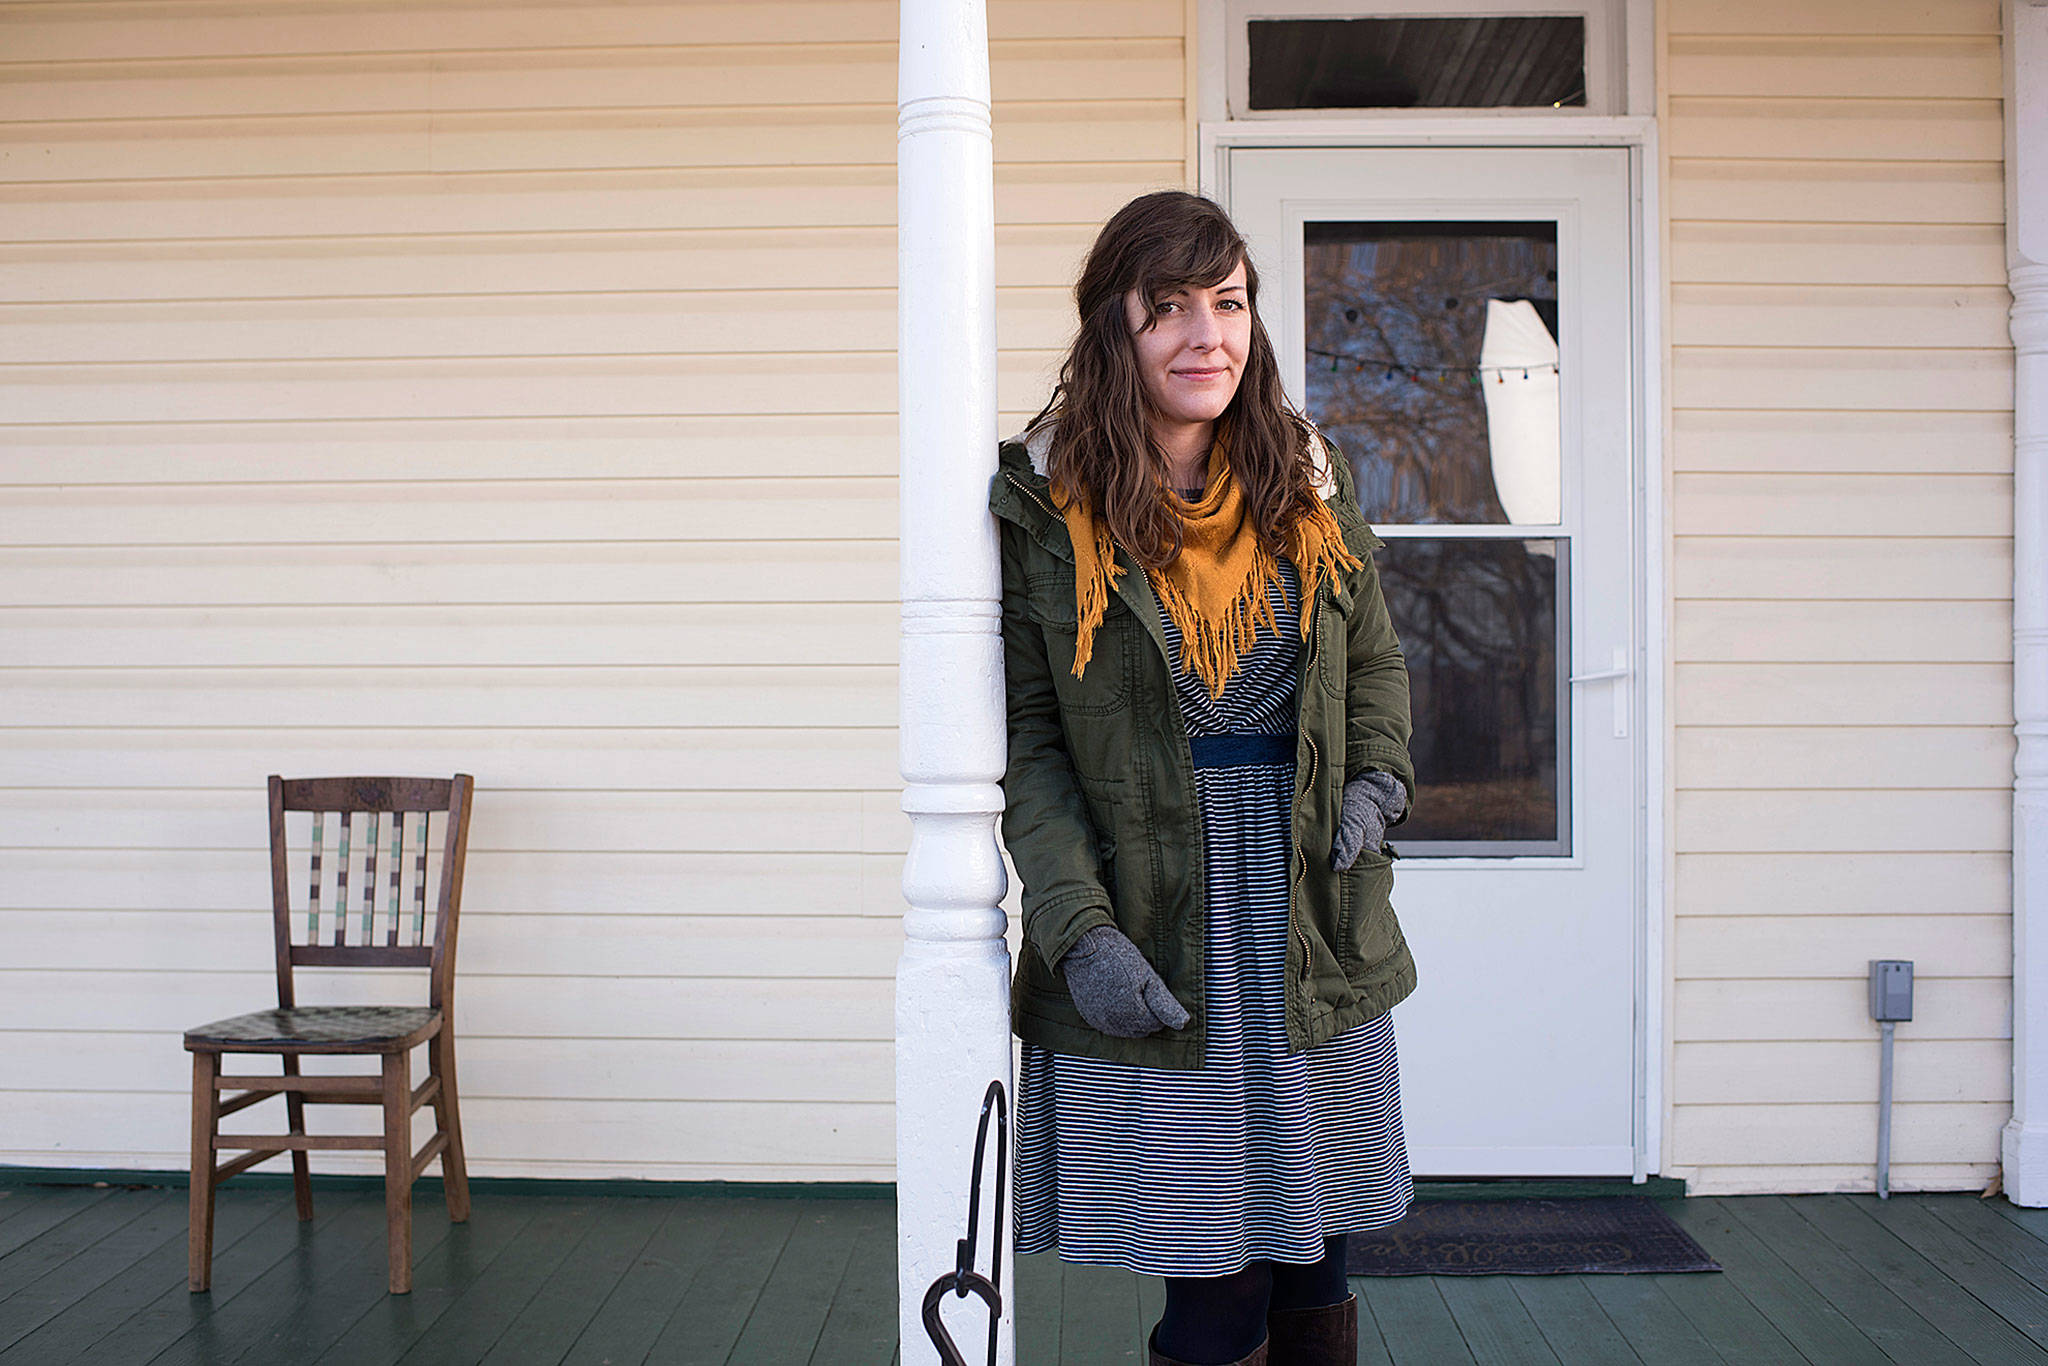 When Sarah Pool finished her master's degree three years ago, she owed $60,000. She's paid every month since, and now owes $69,000. (Washington Post/Marvin Joseph)